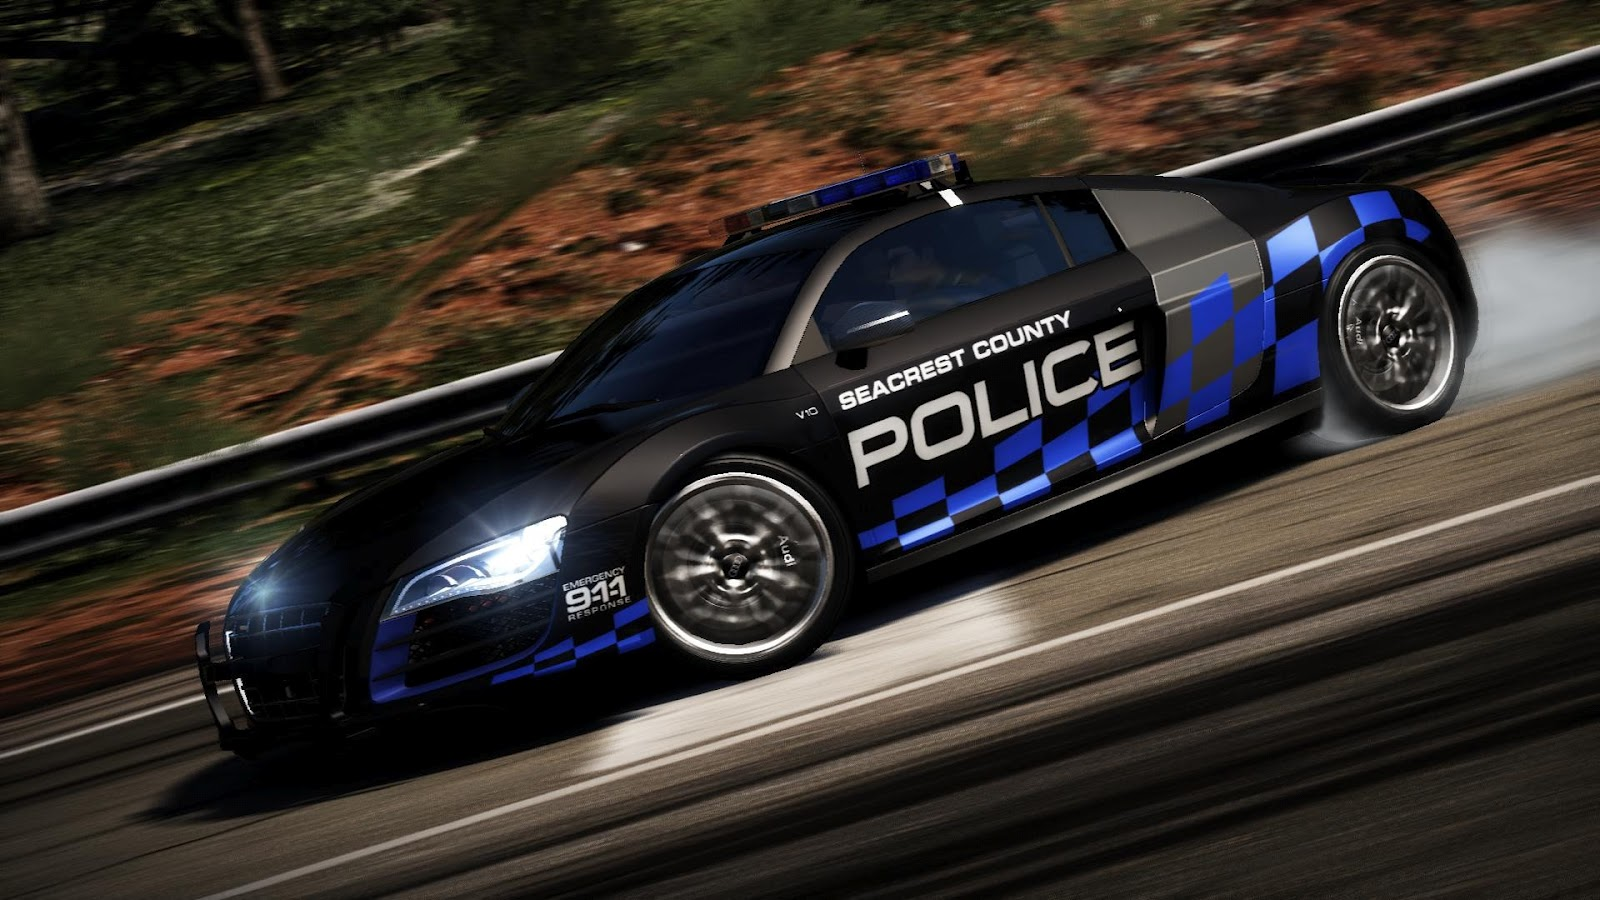 http://1.bp.blogspot.com/-RnXzvbgMt28/UBVfoy5pSLI/AAAAAAAAFQA/PM2fnis5Z-k/s1600/Need+for+Speed+Hot+Pursuit+Wallpapers+3.jpg